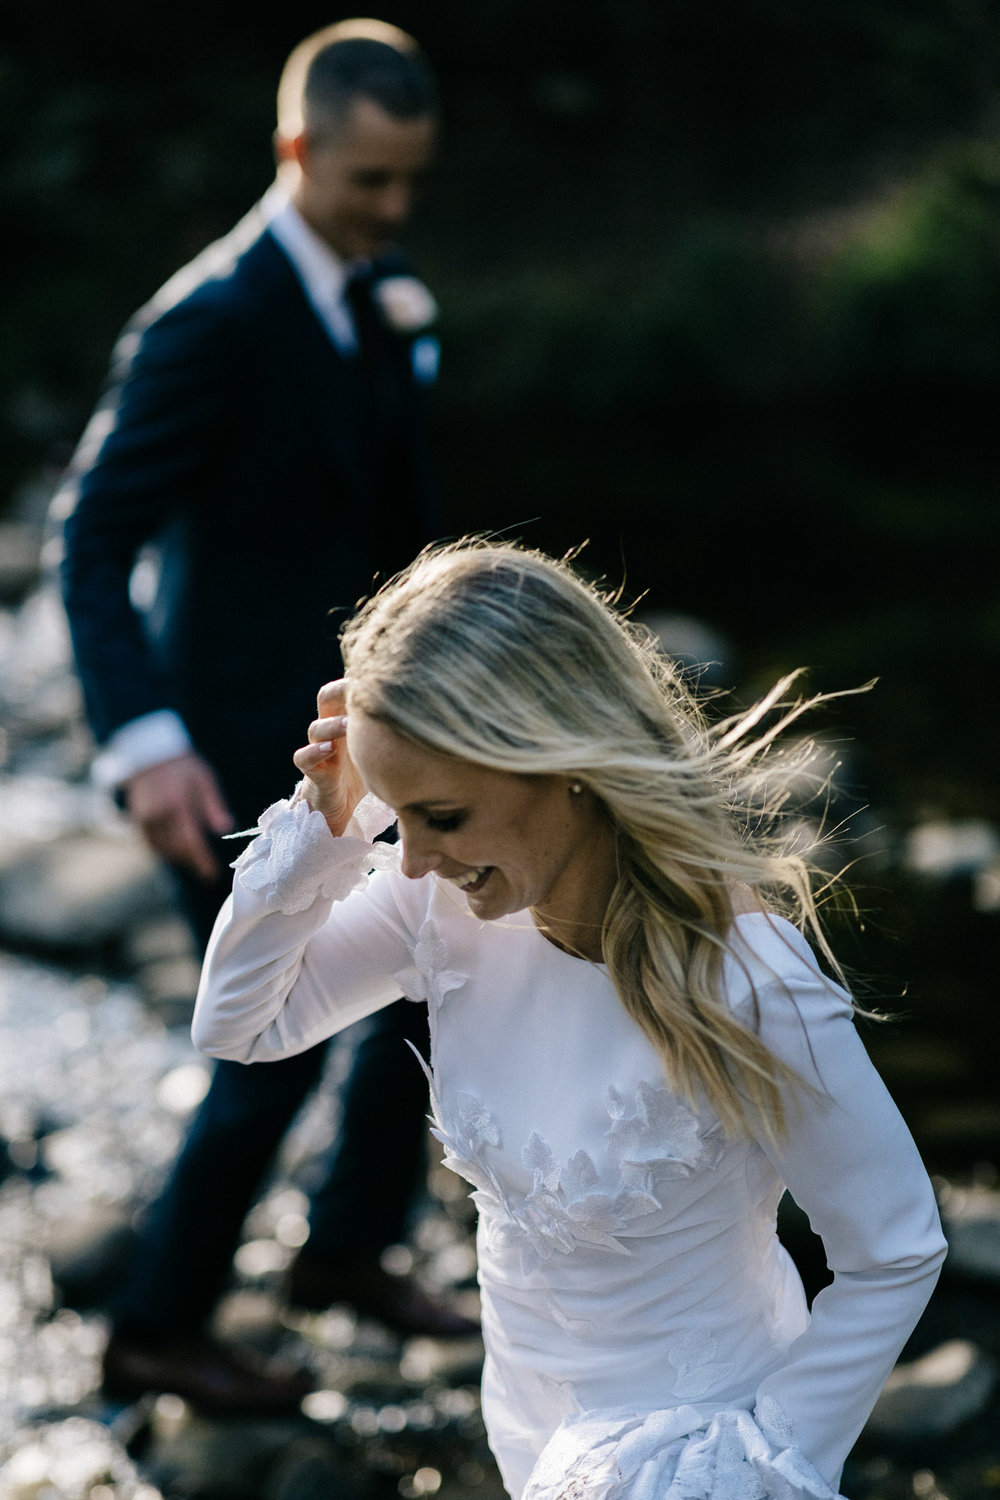 Marnie Hawson, ethical wedding photographer and Jason Hewitt Bridal